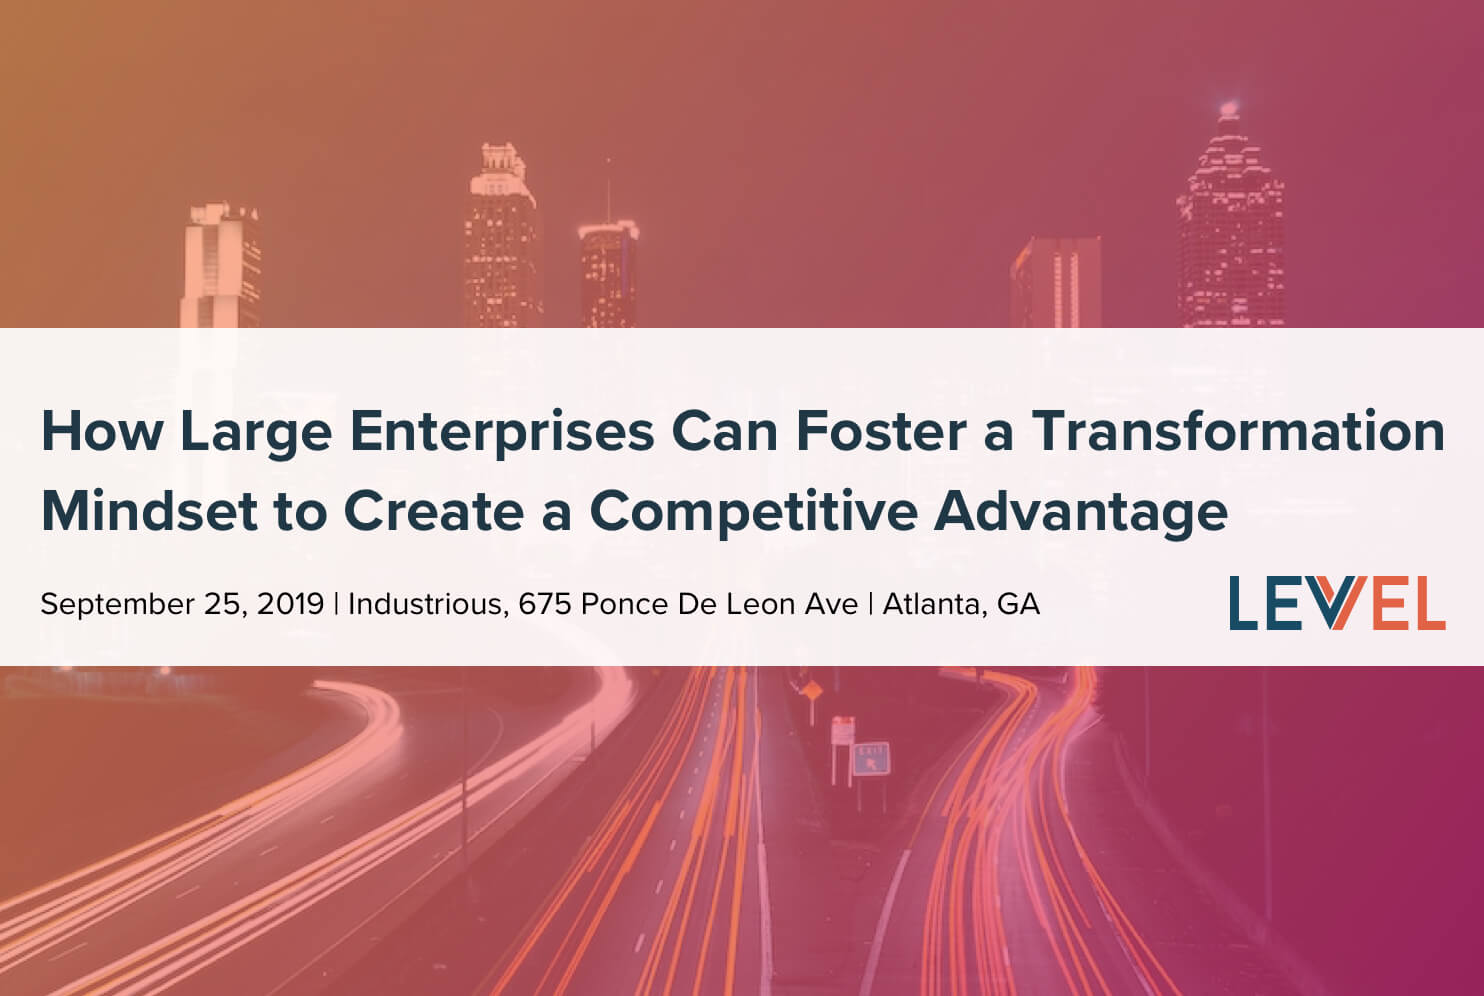 How Large Enterprises Can Foster a Transformation Mindset to Create a Competitive Advantage